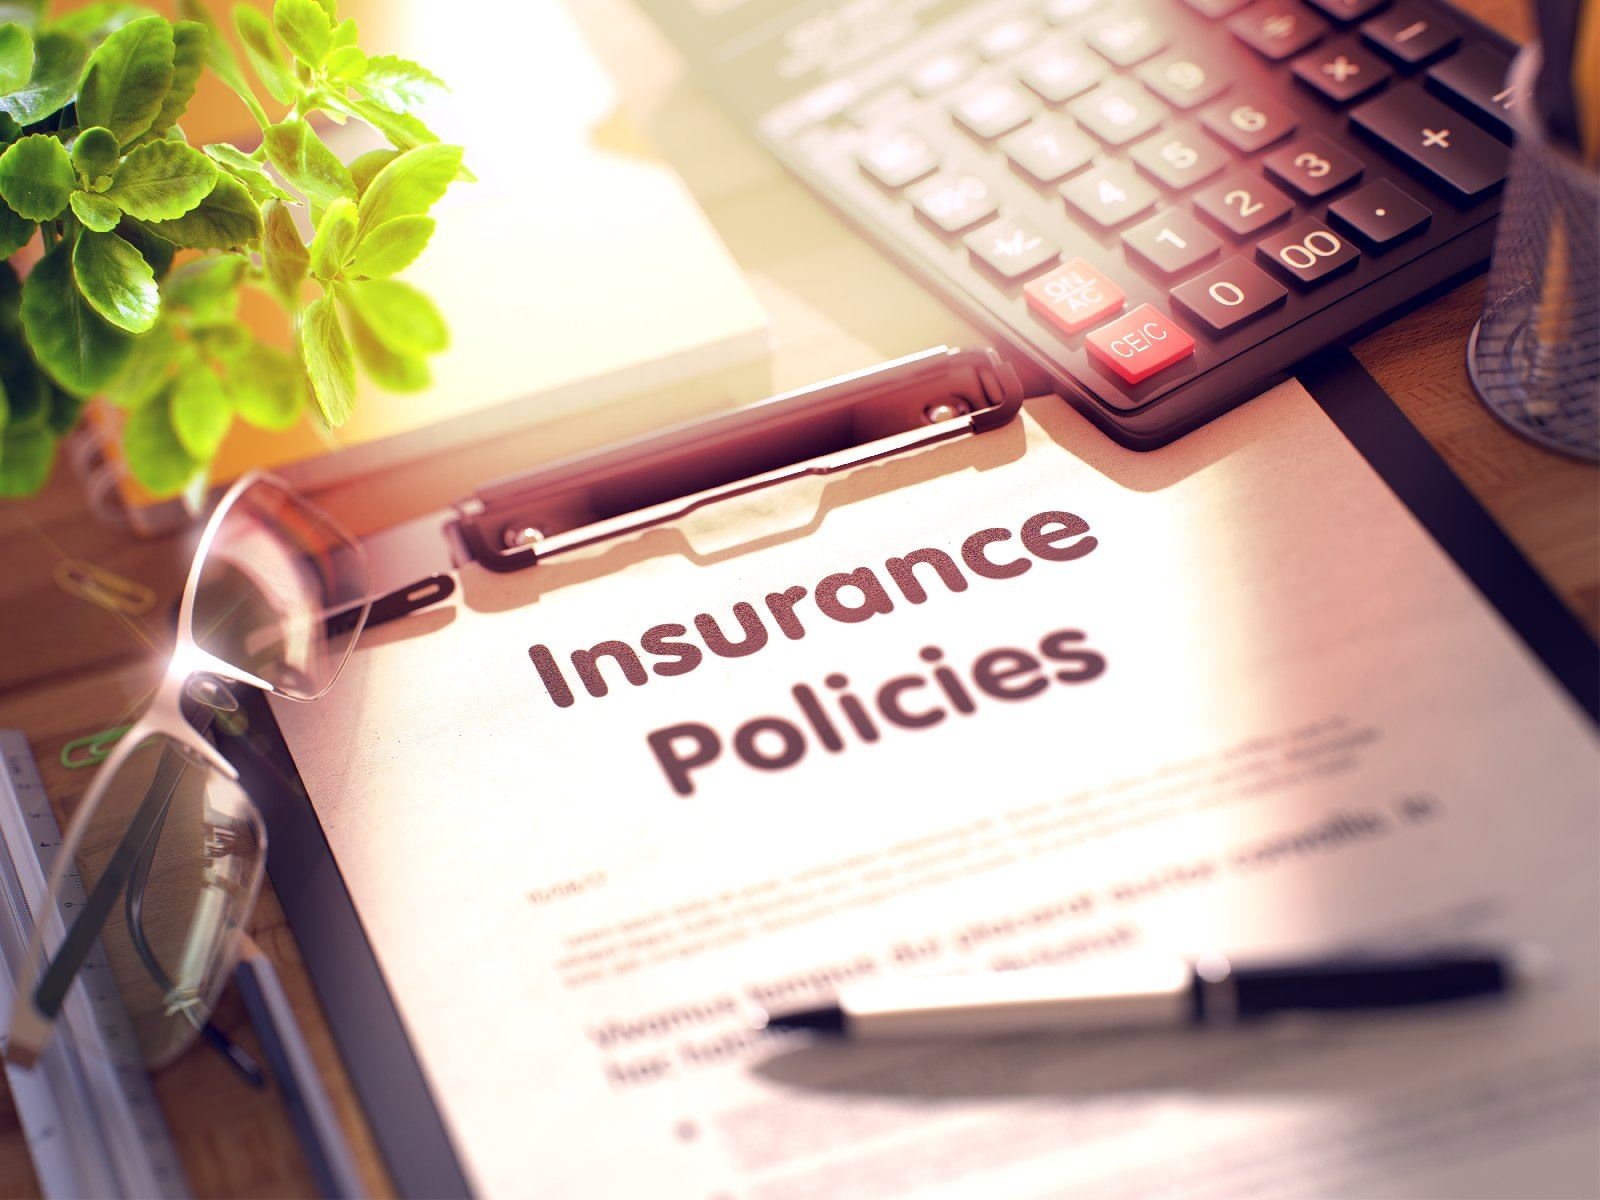 Insurance Policy Analysis / Review